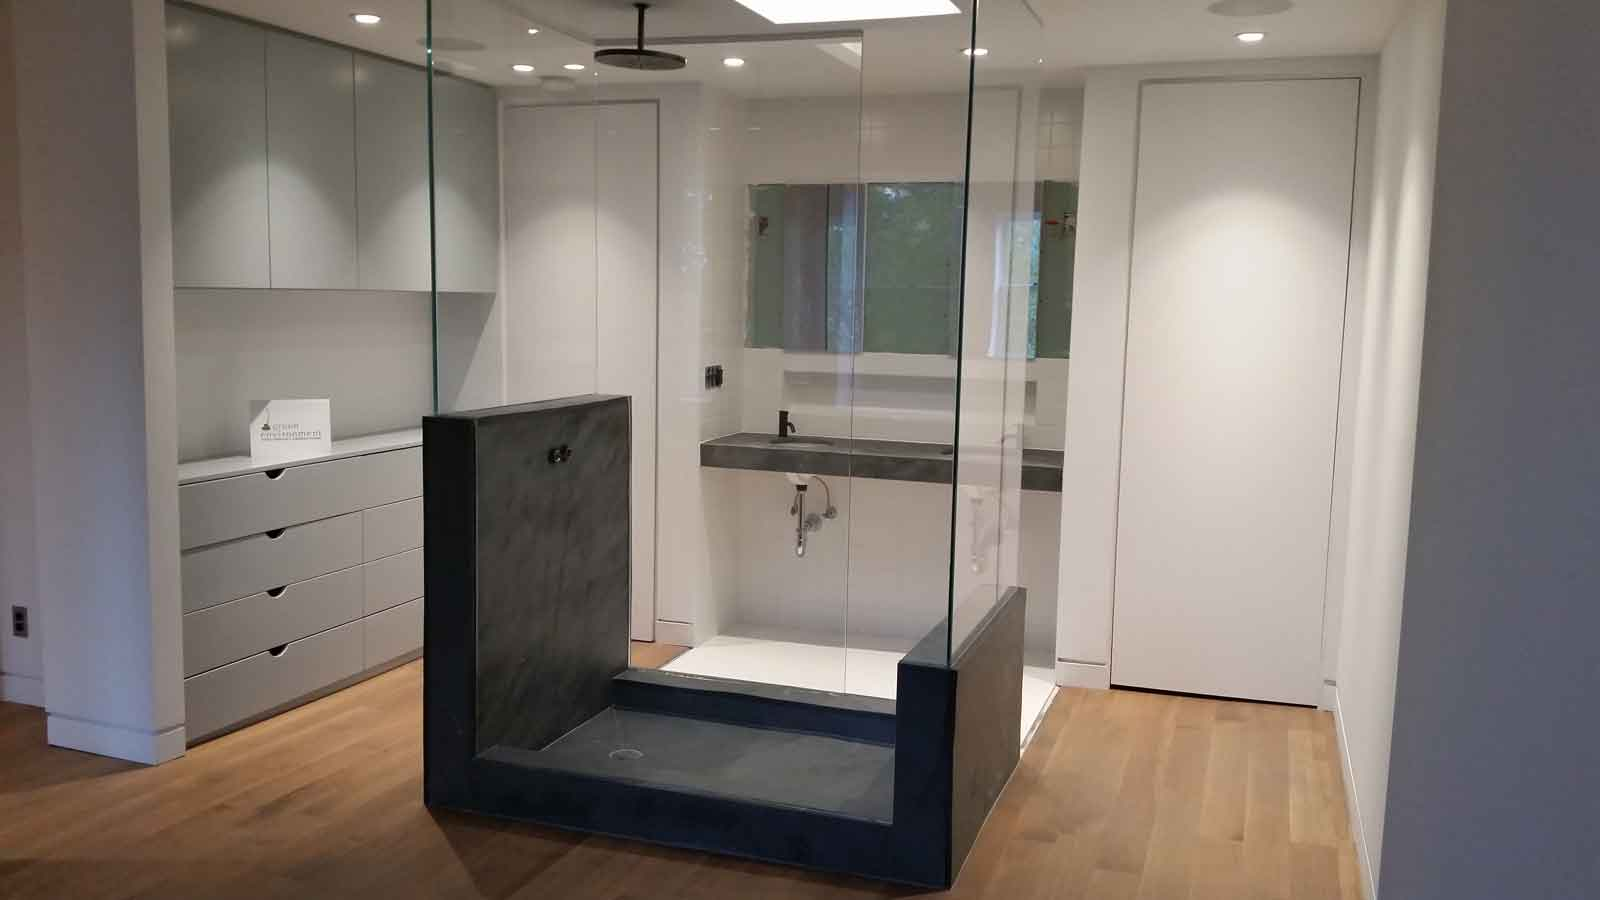 Luxury bathroom with glass-walled central shower.